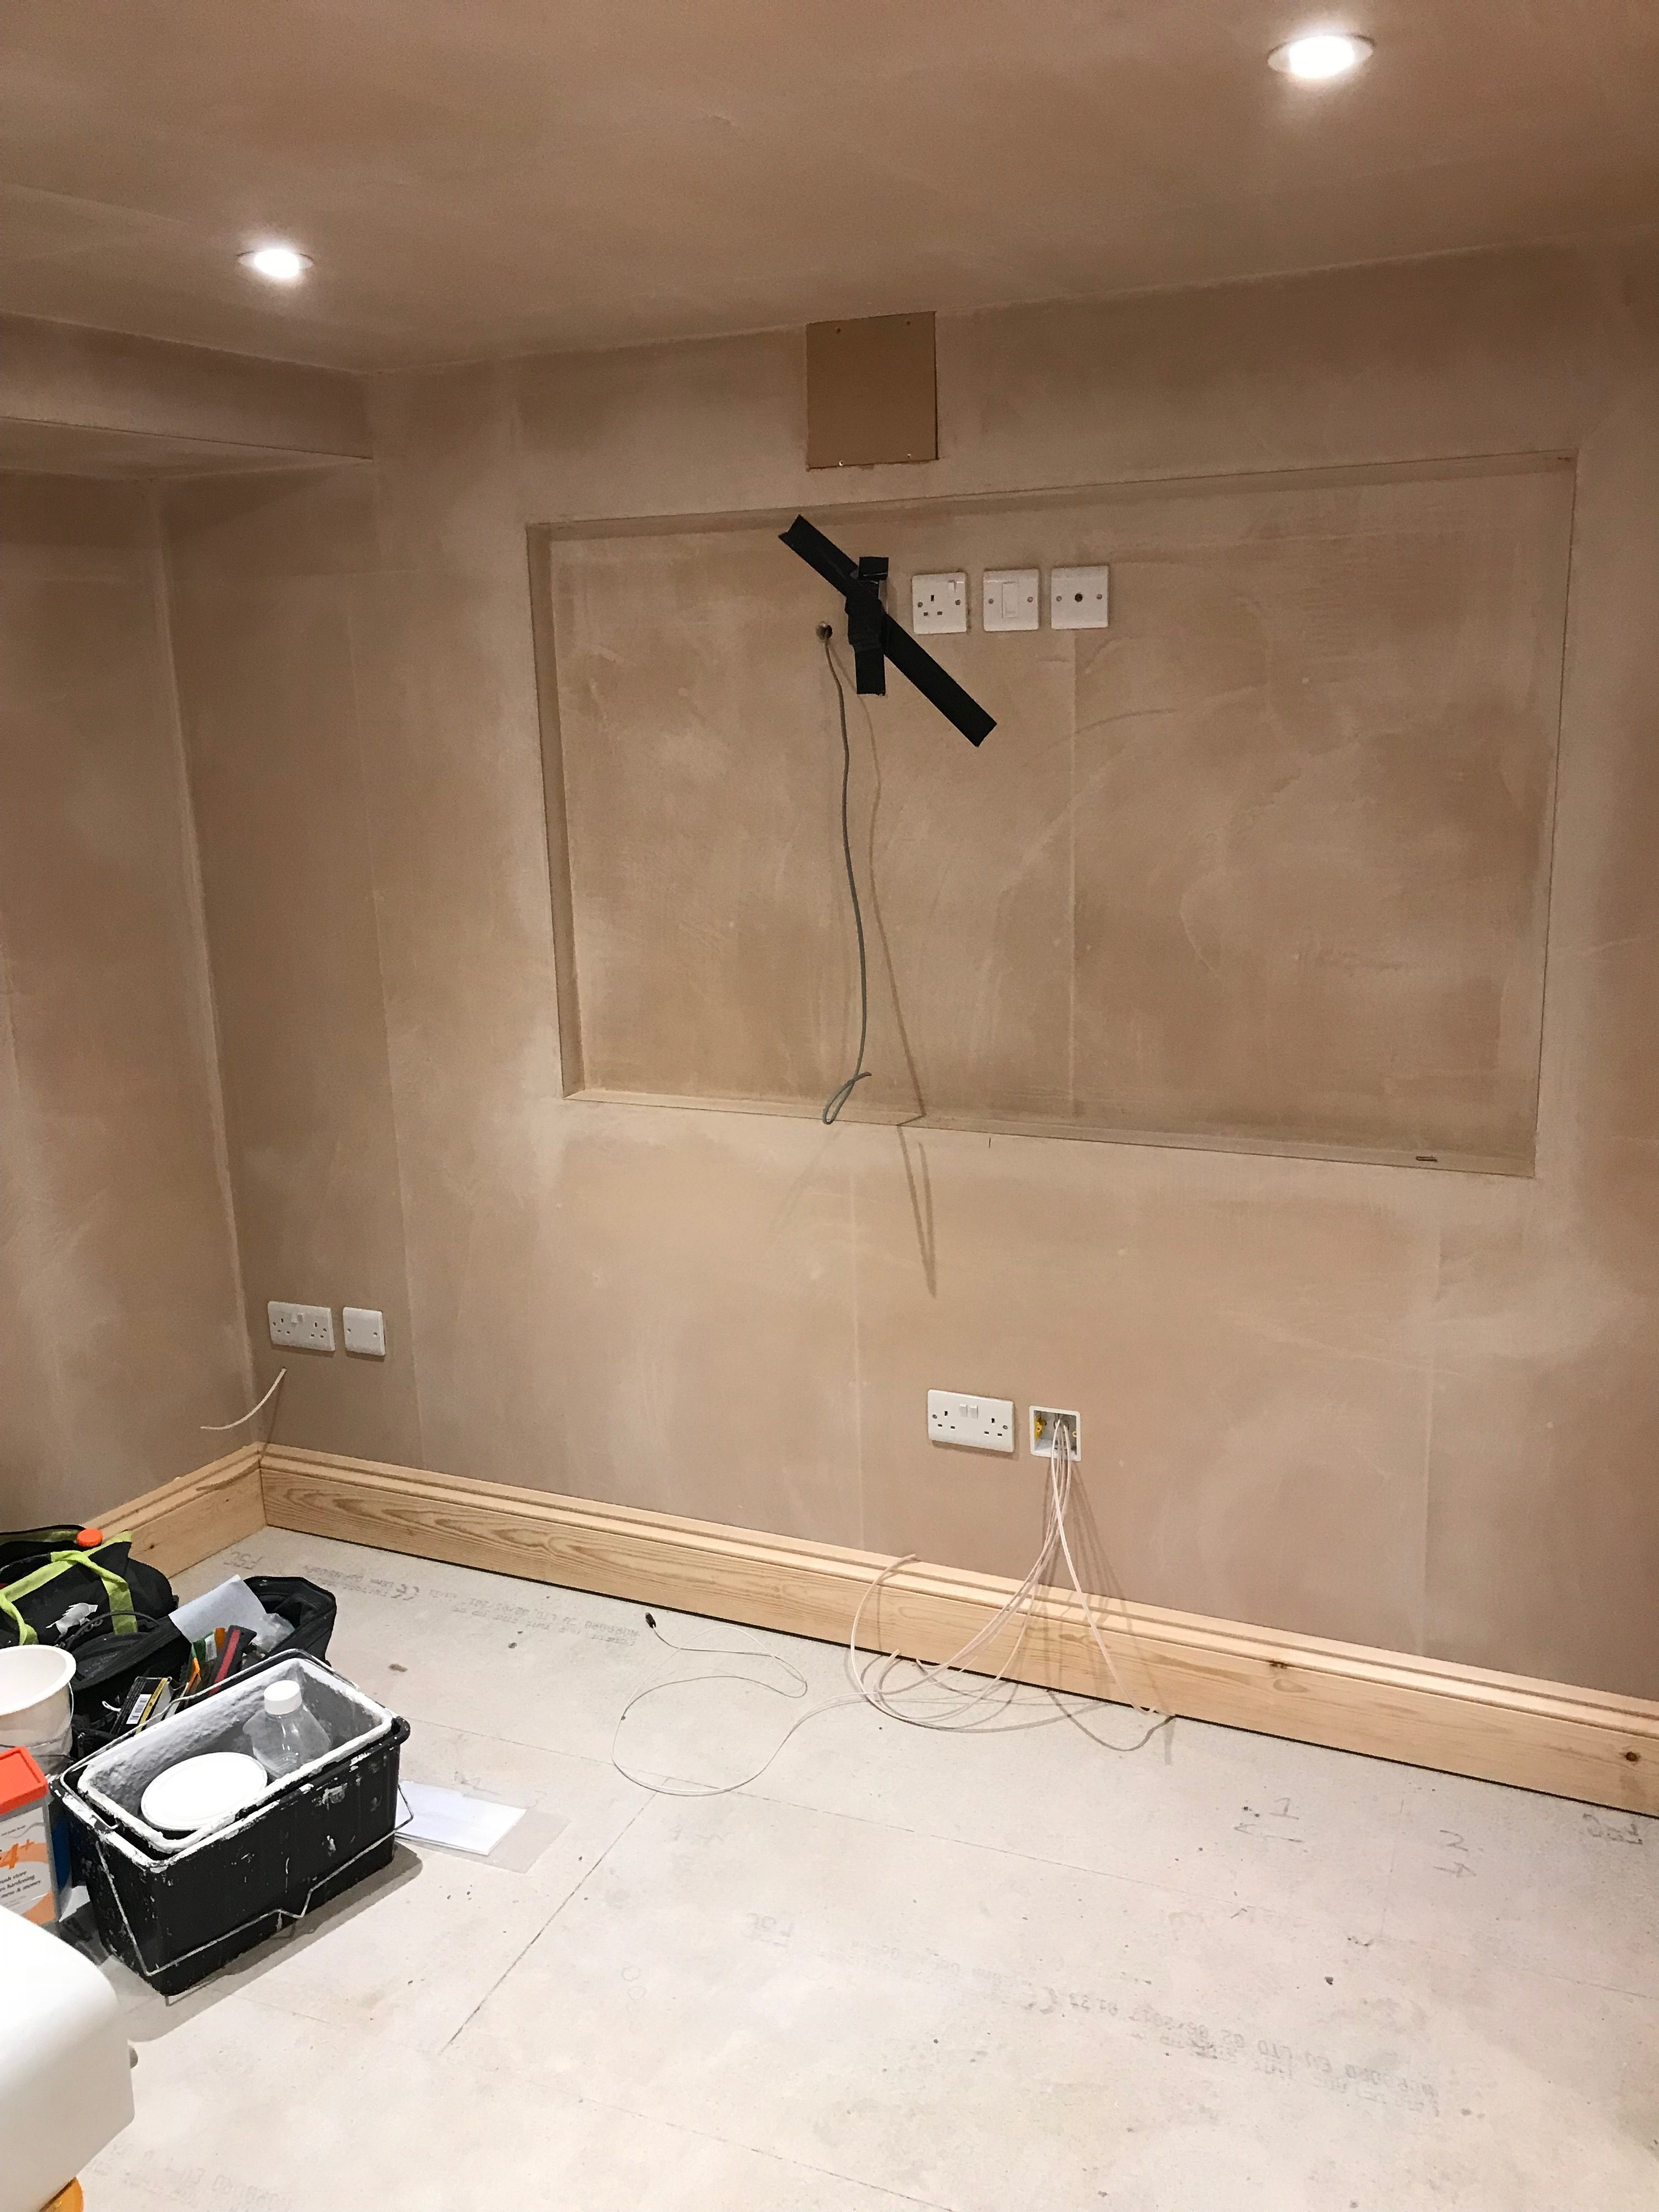 Electrical fit out for lighting, sockets and TV